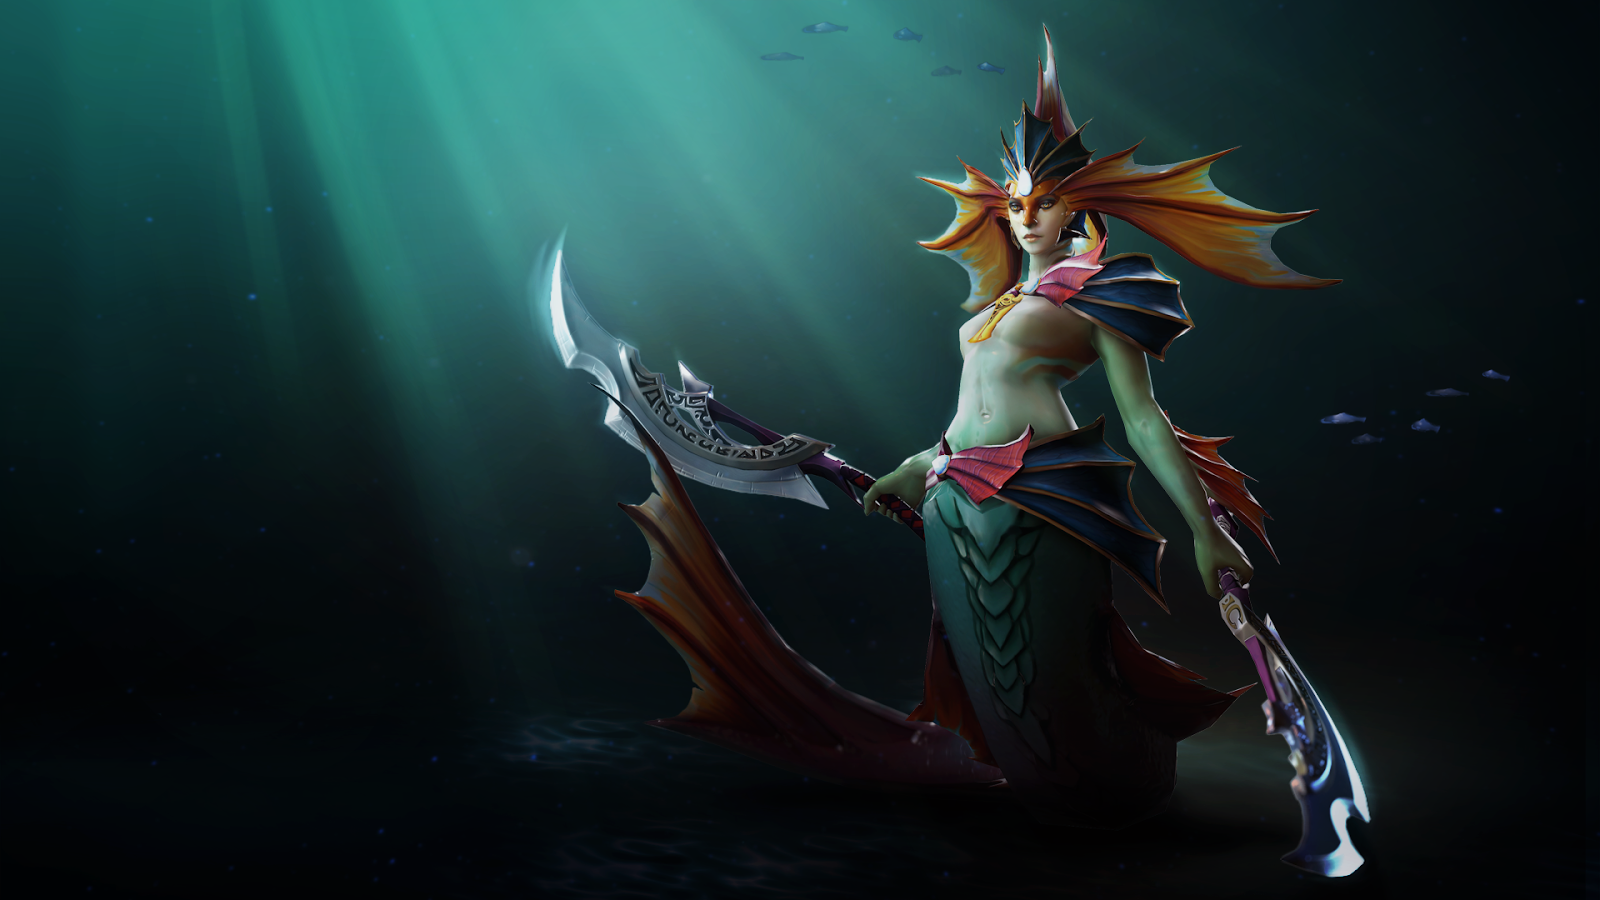 Naga siren wallpaper loadingscreen anuxis dota2 items here is a 1920x1080 sized image of the loading screen i made for my naga set just change the s1600 in the url to s1920 altavistaventures Gallery